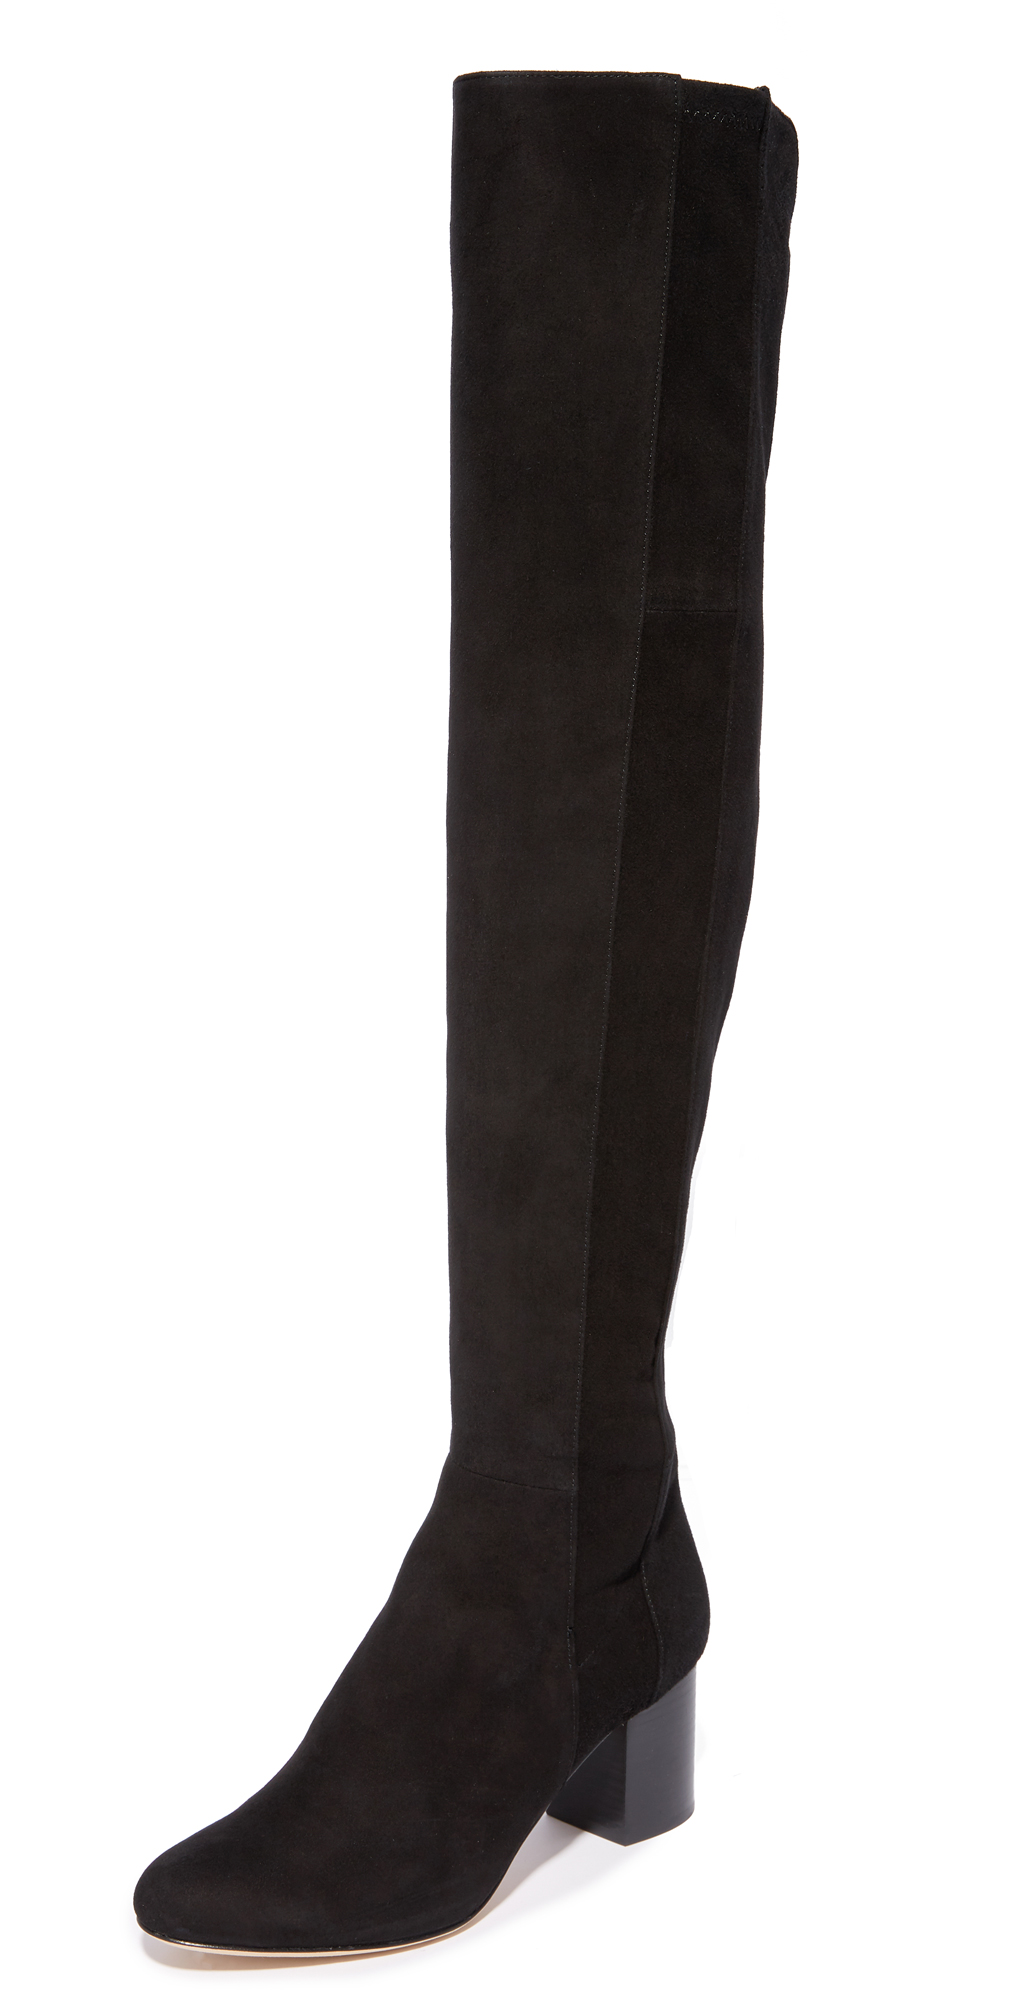 Luzzi Over the Knee Boots Diane von Furstenberg